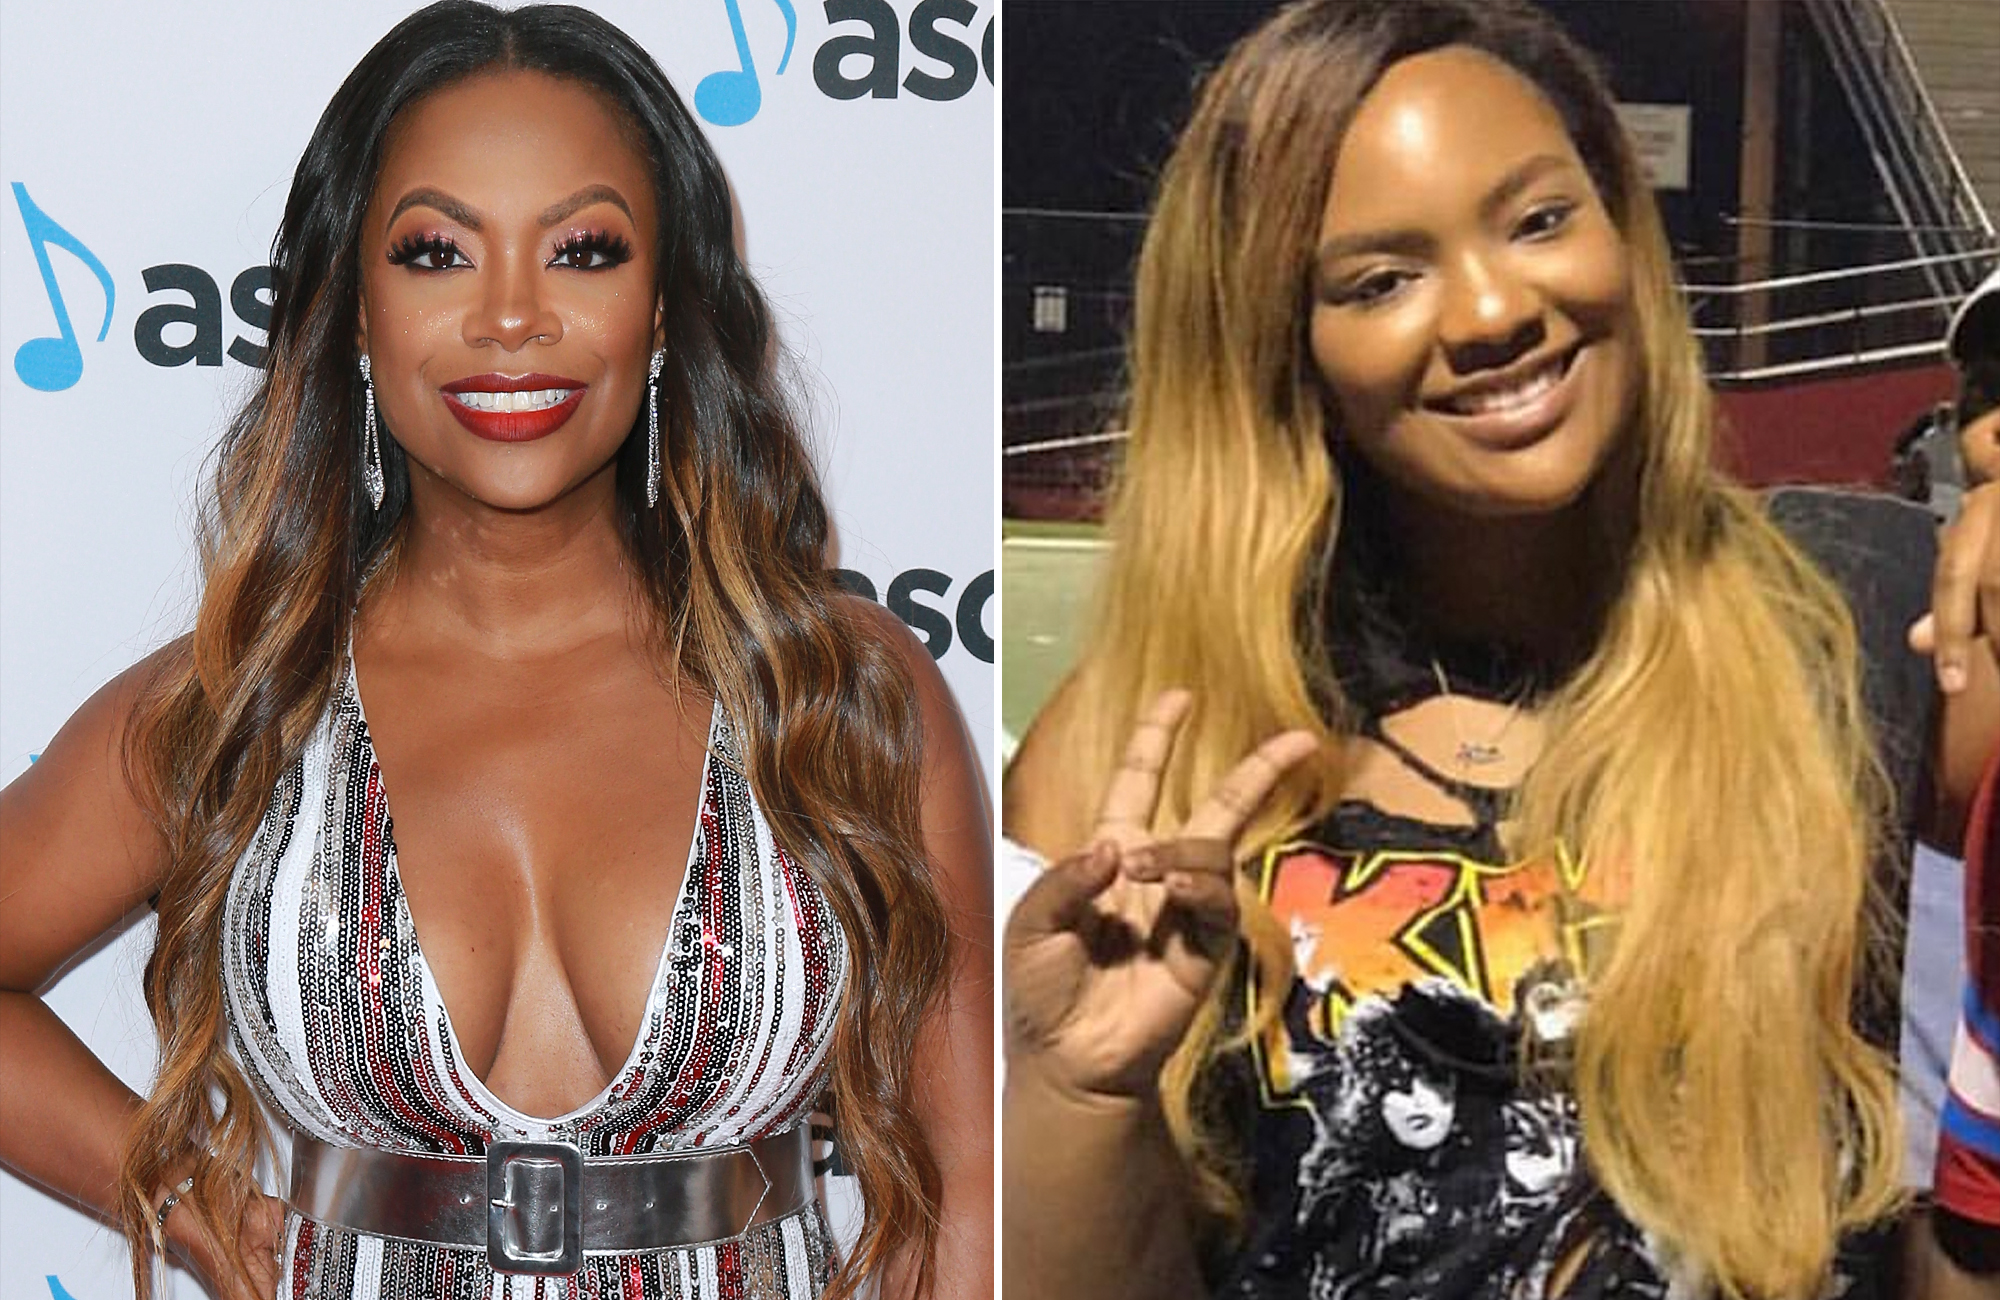 kandi-burruss-and-riley-burruss-come-home-from-from-their-mom-daughter-vacay-the-rhoa-star-shares-a-few-last-thoughts